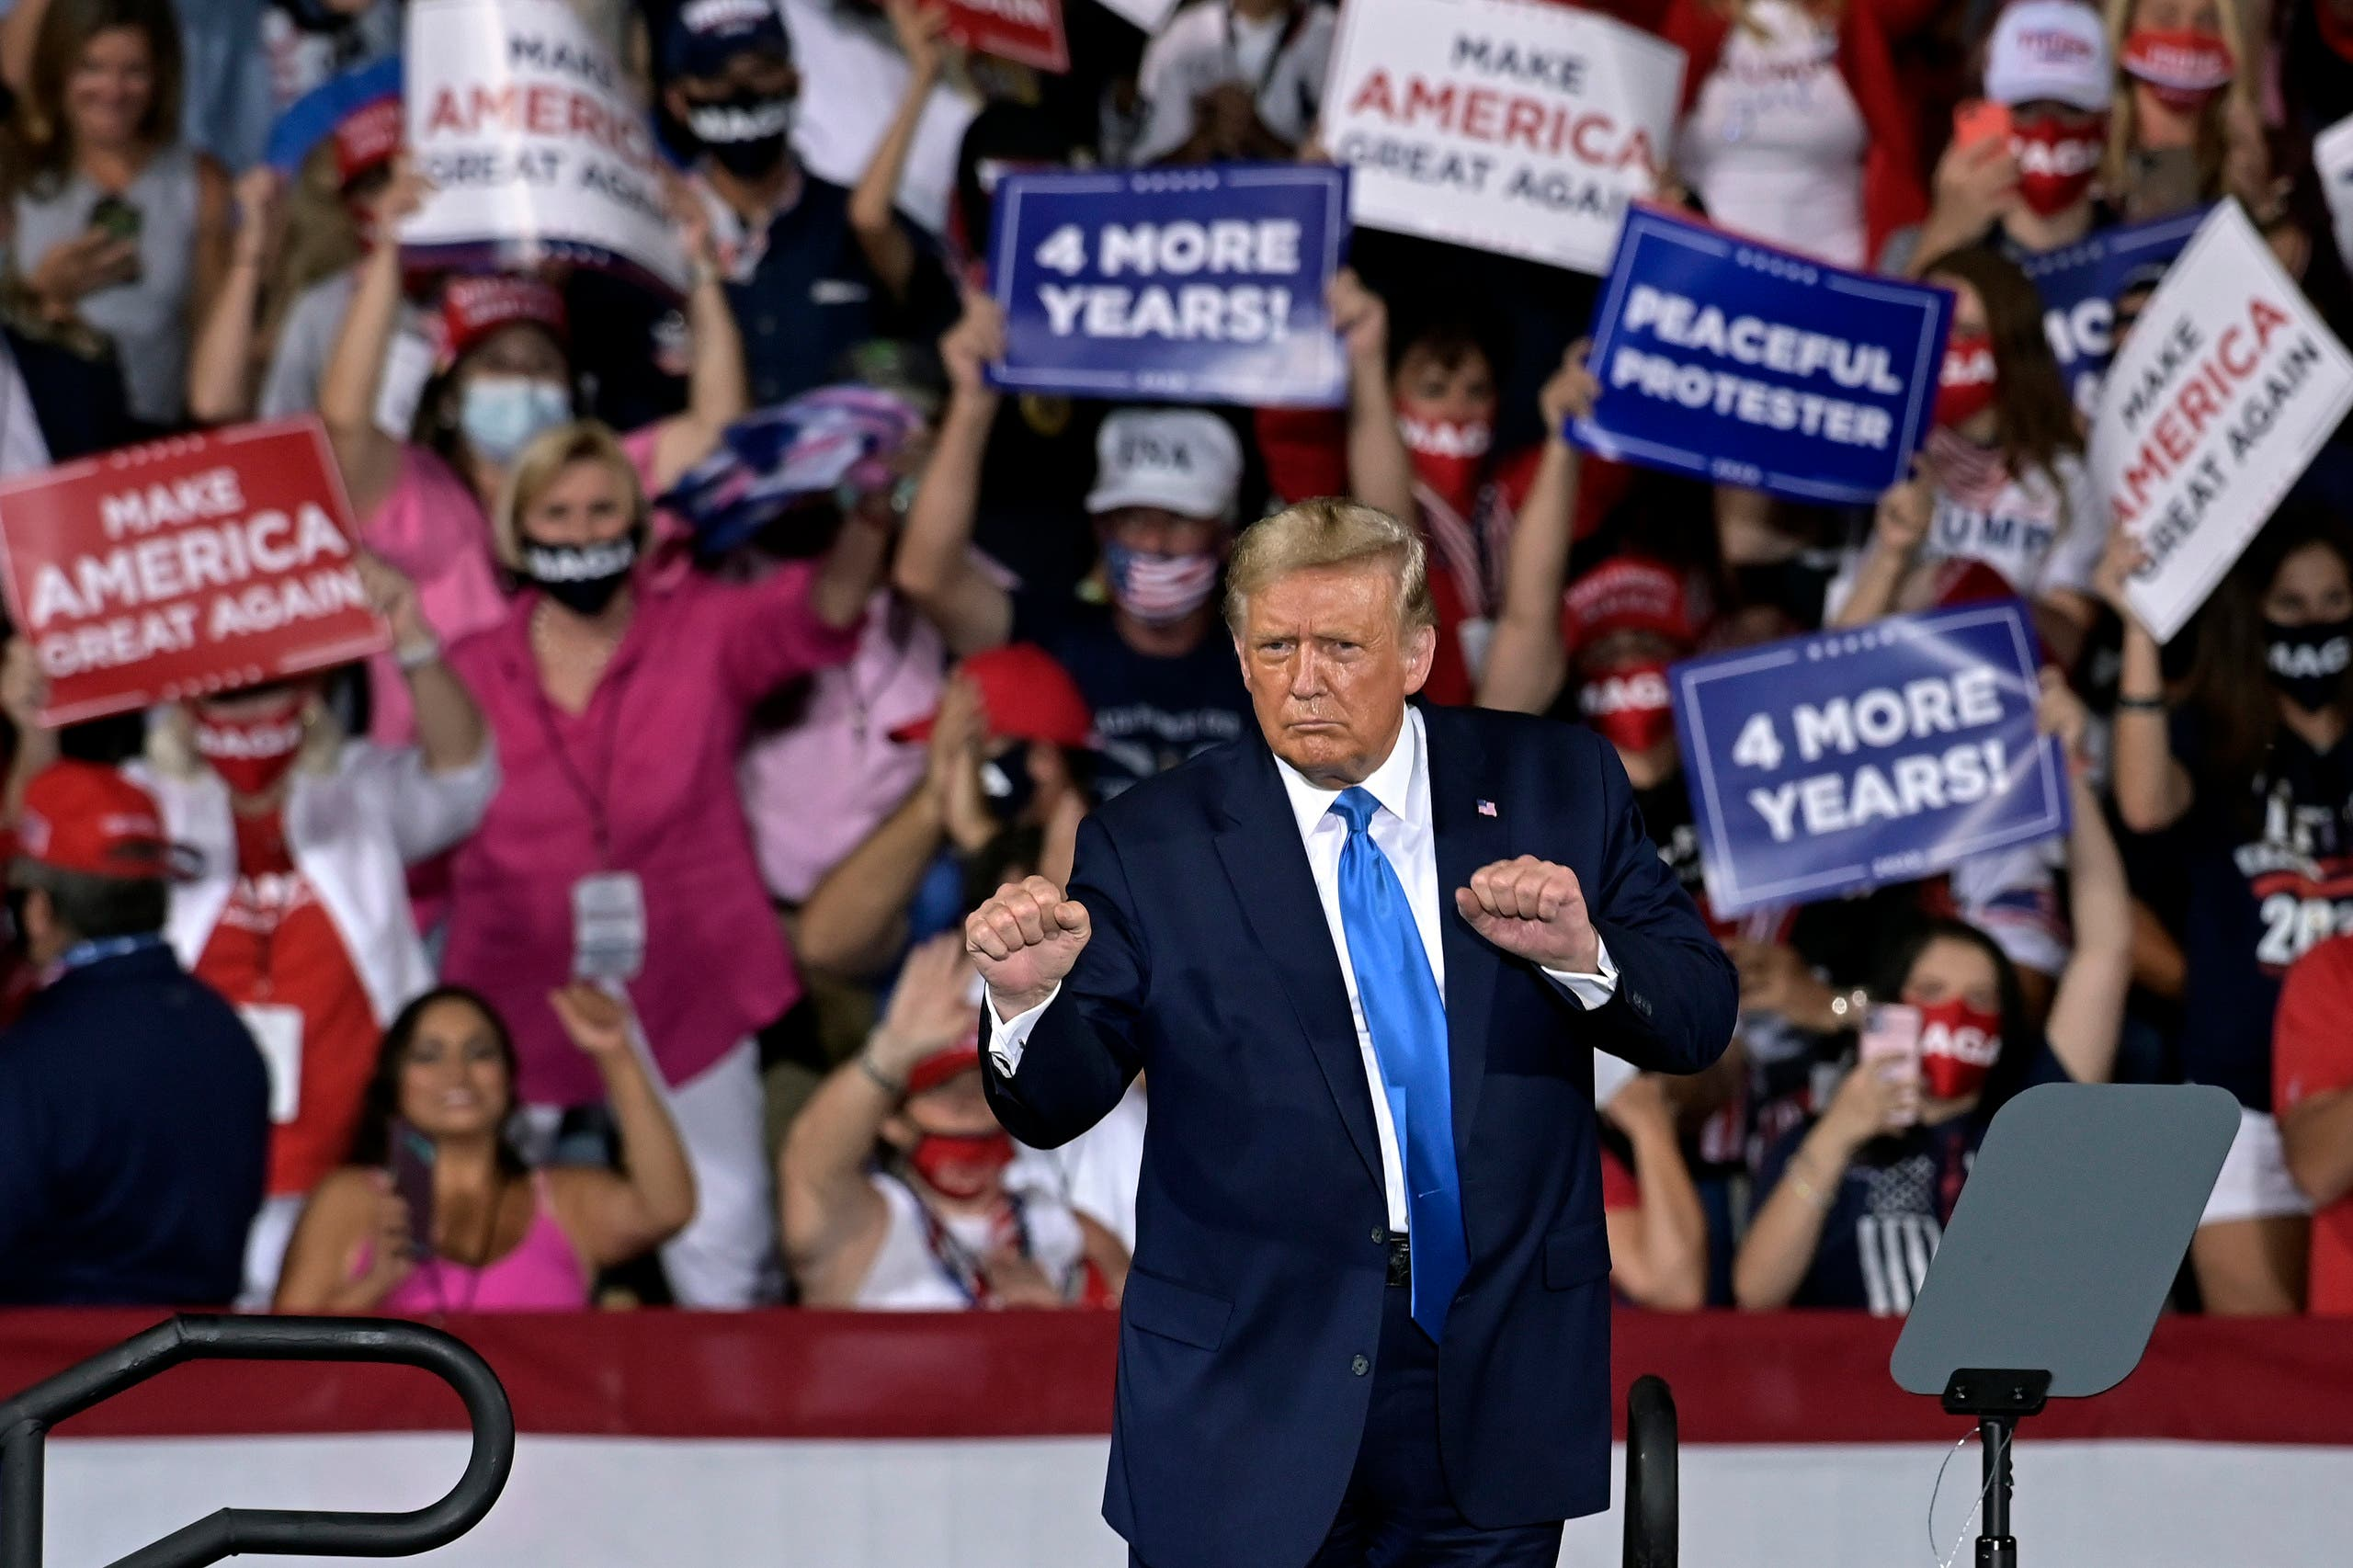 President Donald Trump at a Latinos For Trump campaign event in Florida, Sept. 25, 2020. (Reuters)